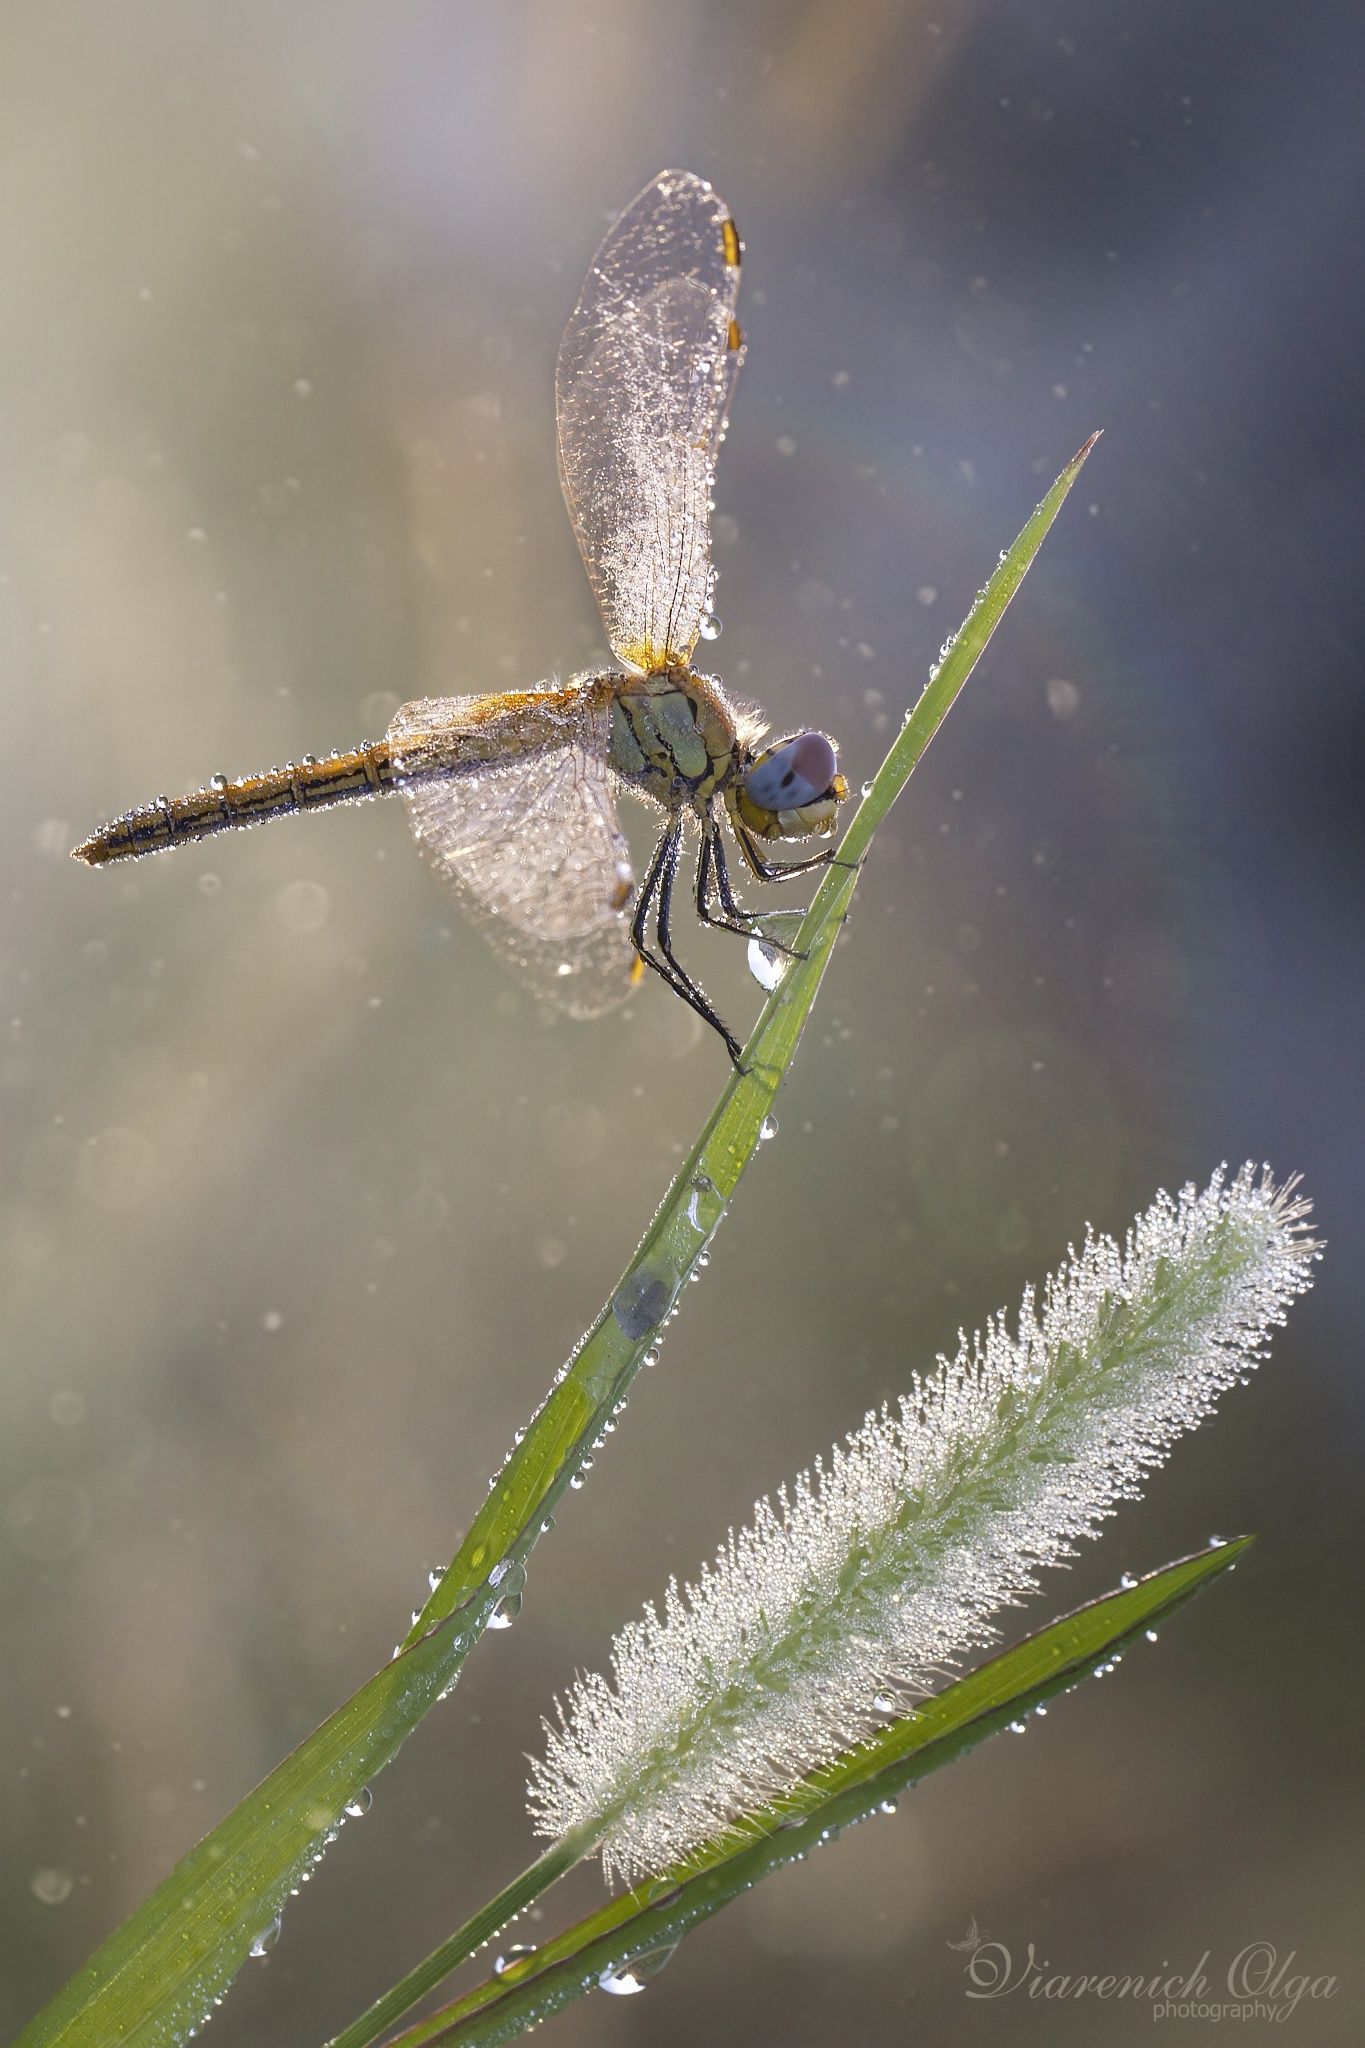 Vijver Insecten Dragonfly In The Dew By Olga Viarenich On 500px Brandschilderen